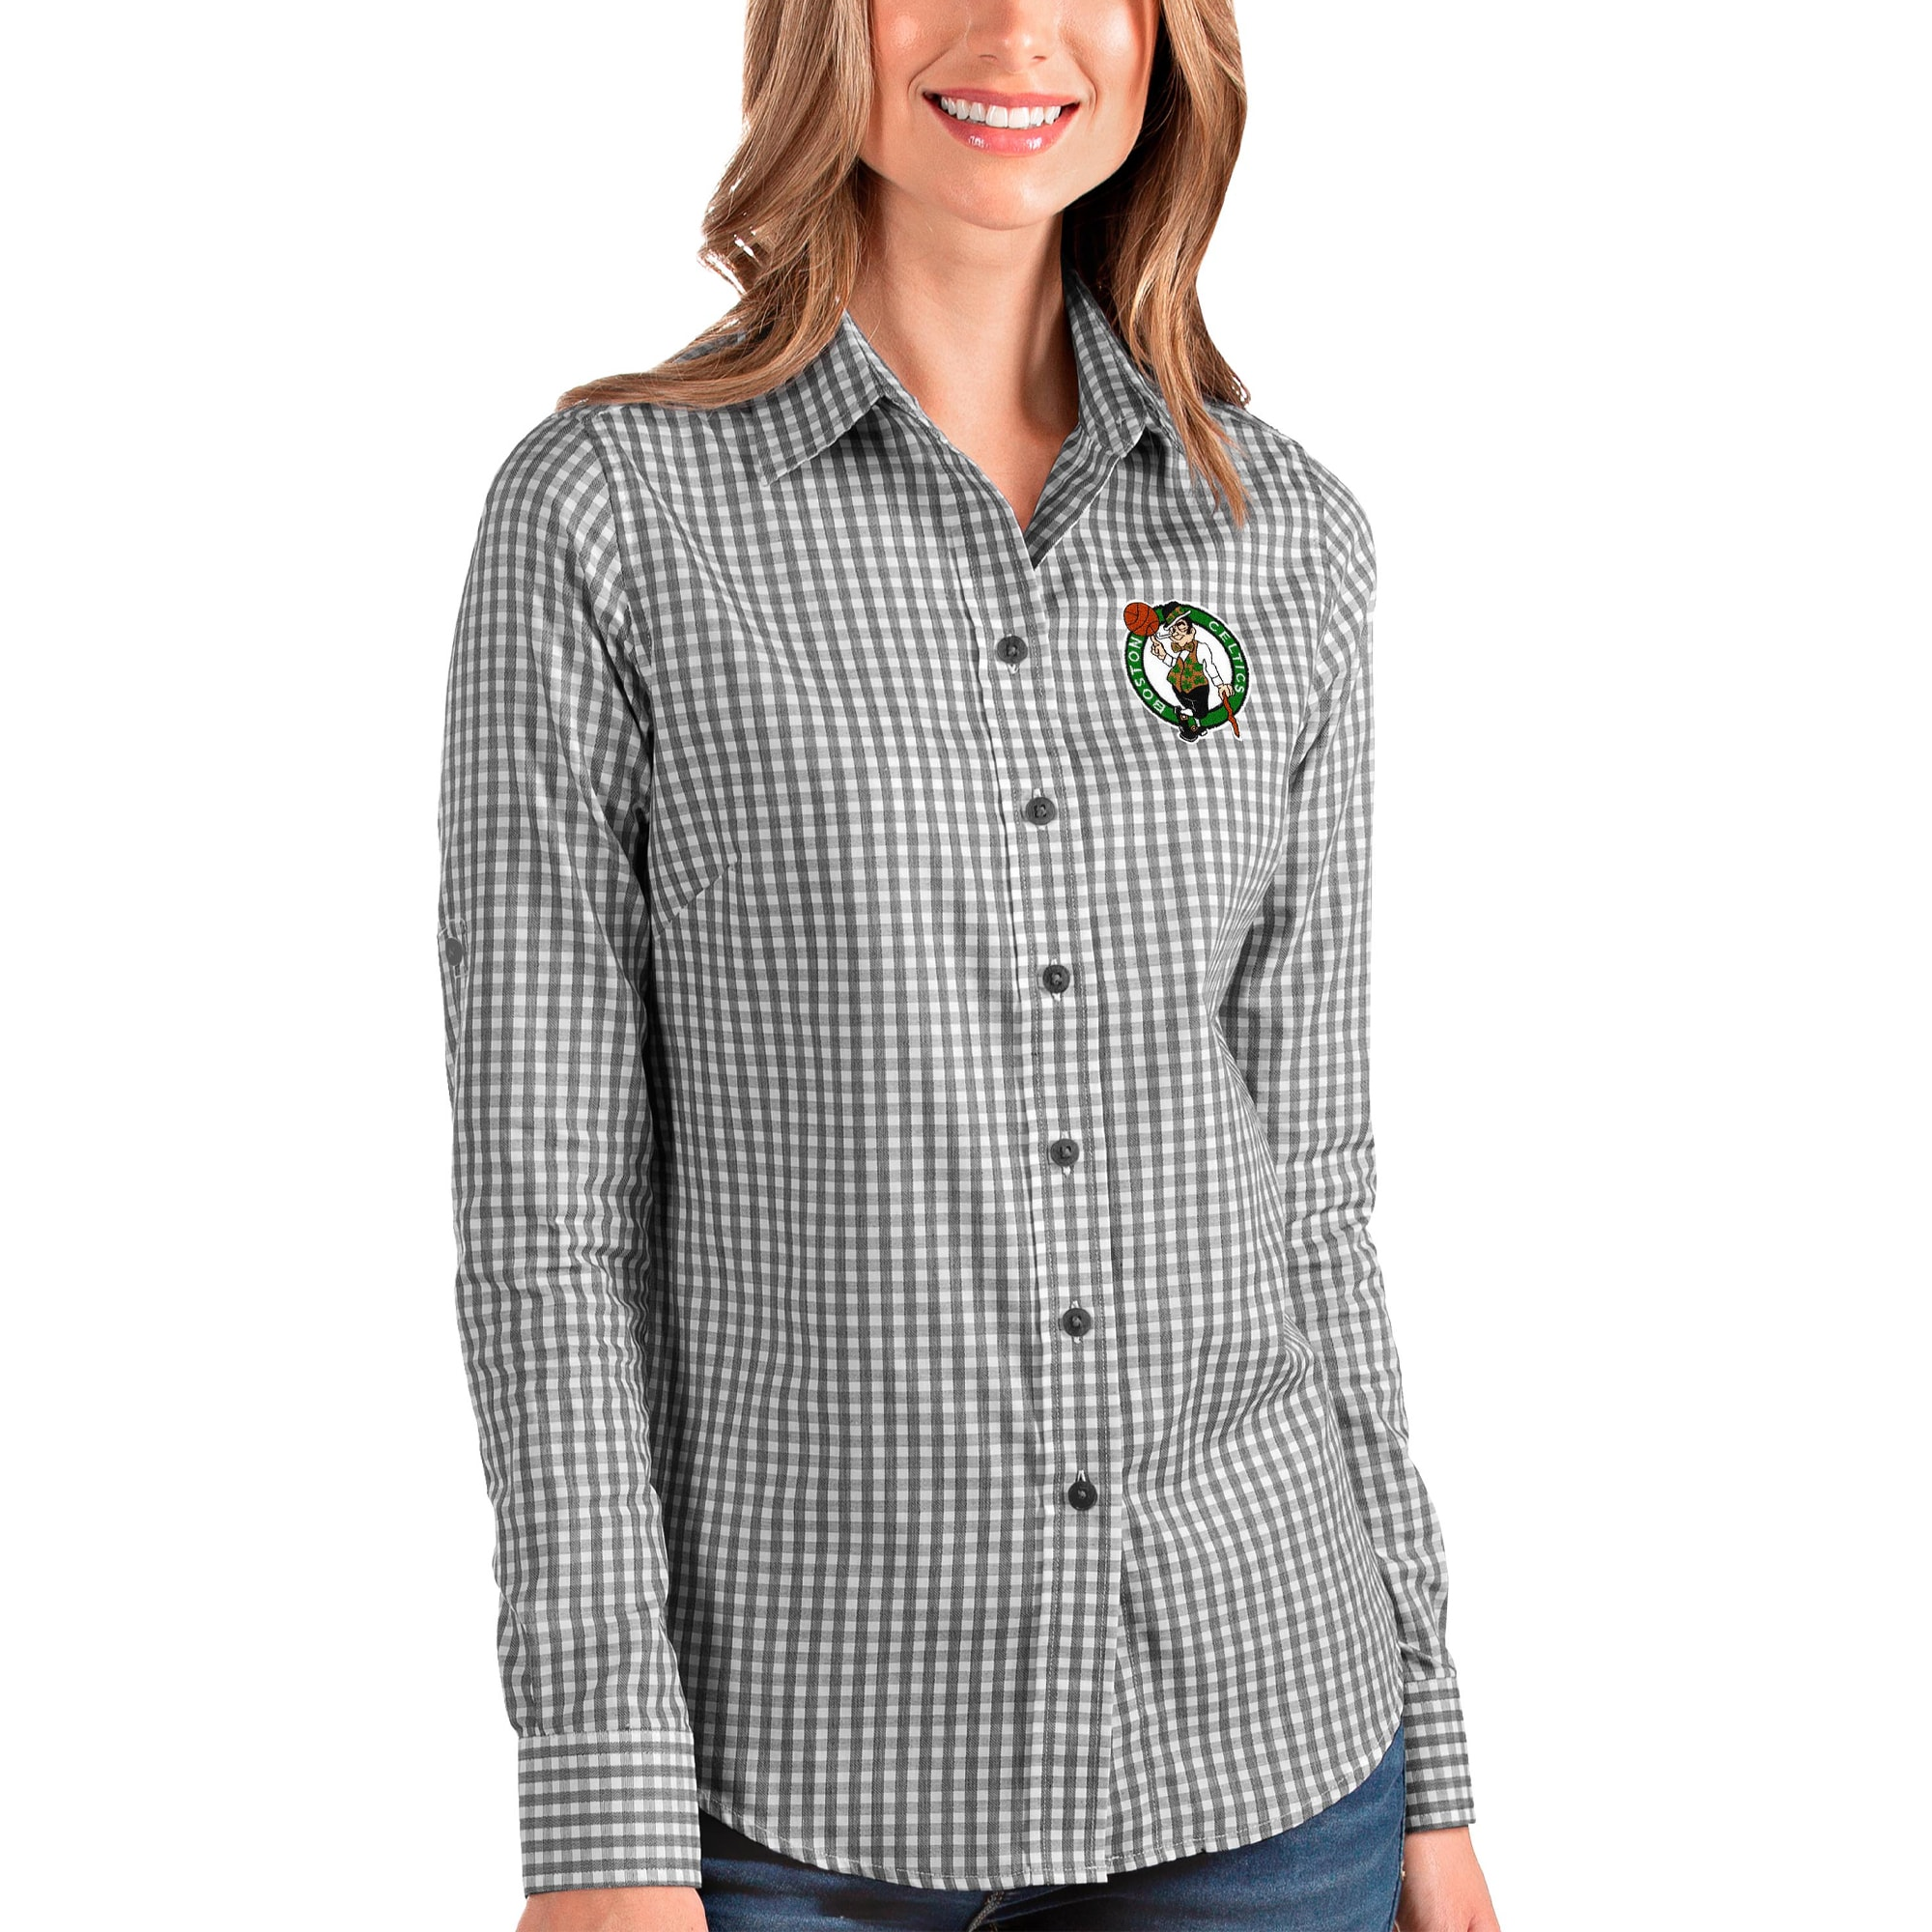 Boston Celtics Antigua Women's Structure Button-Up Long Sleeve Shirt - Black/White